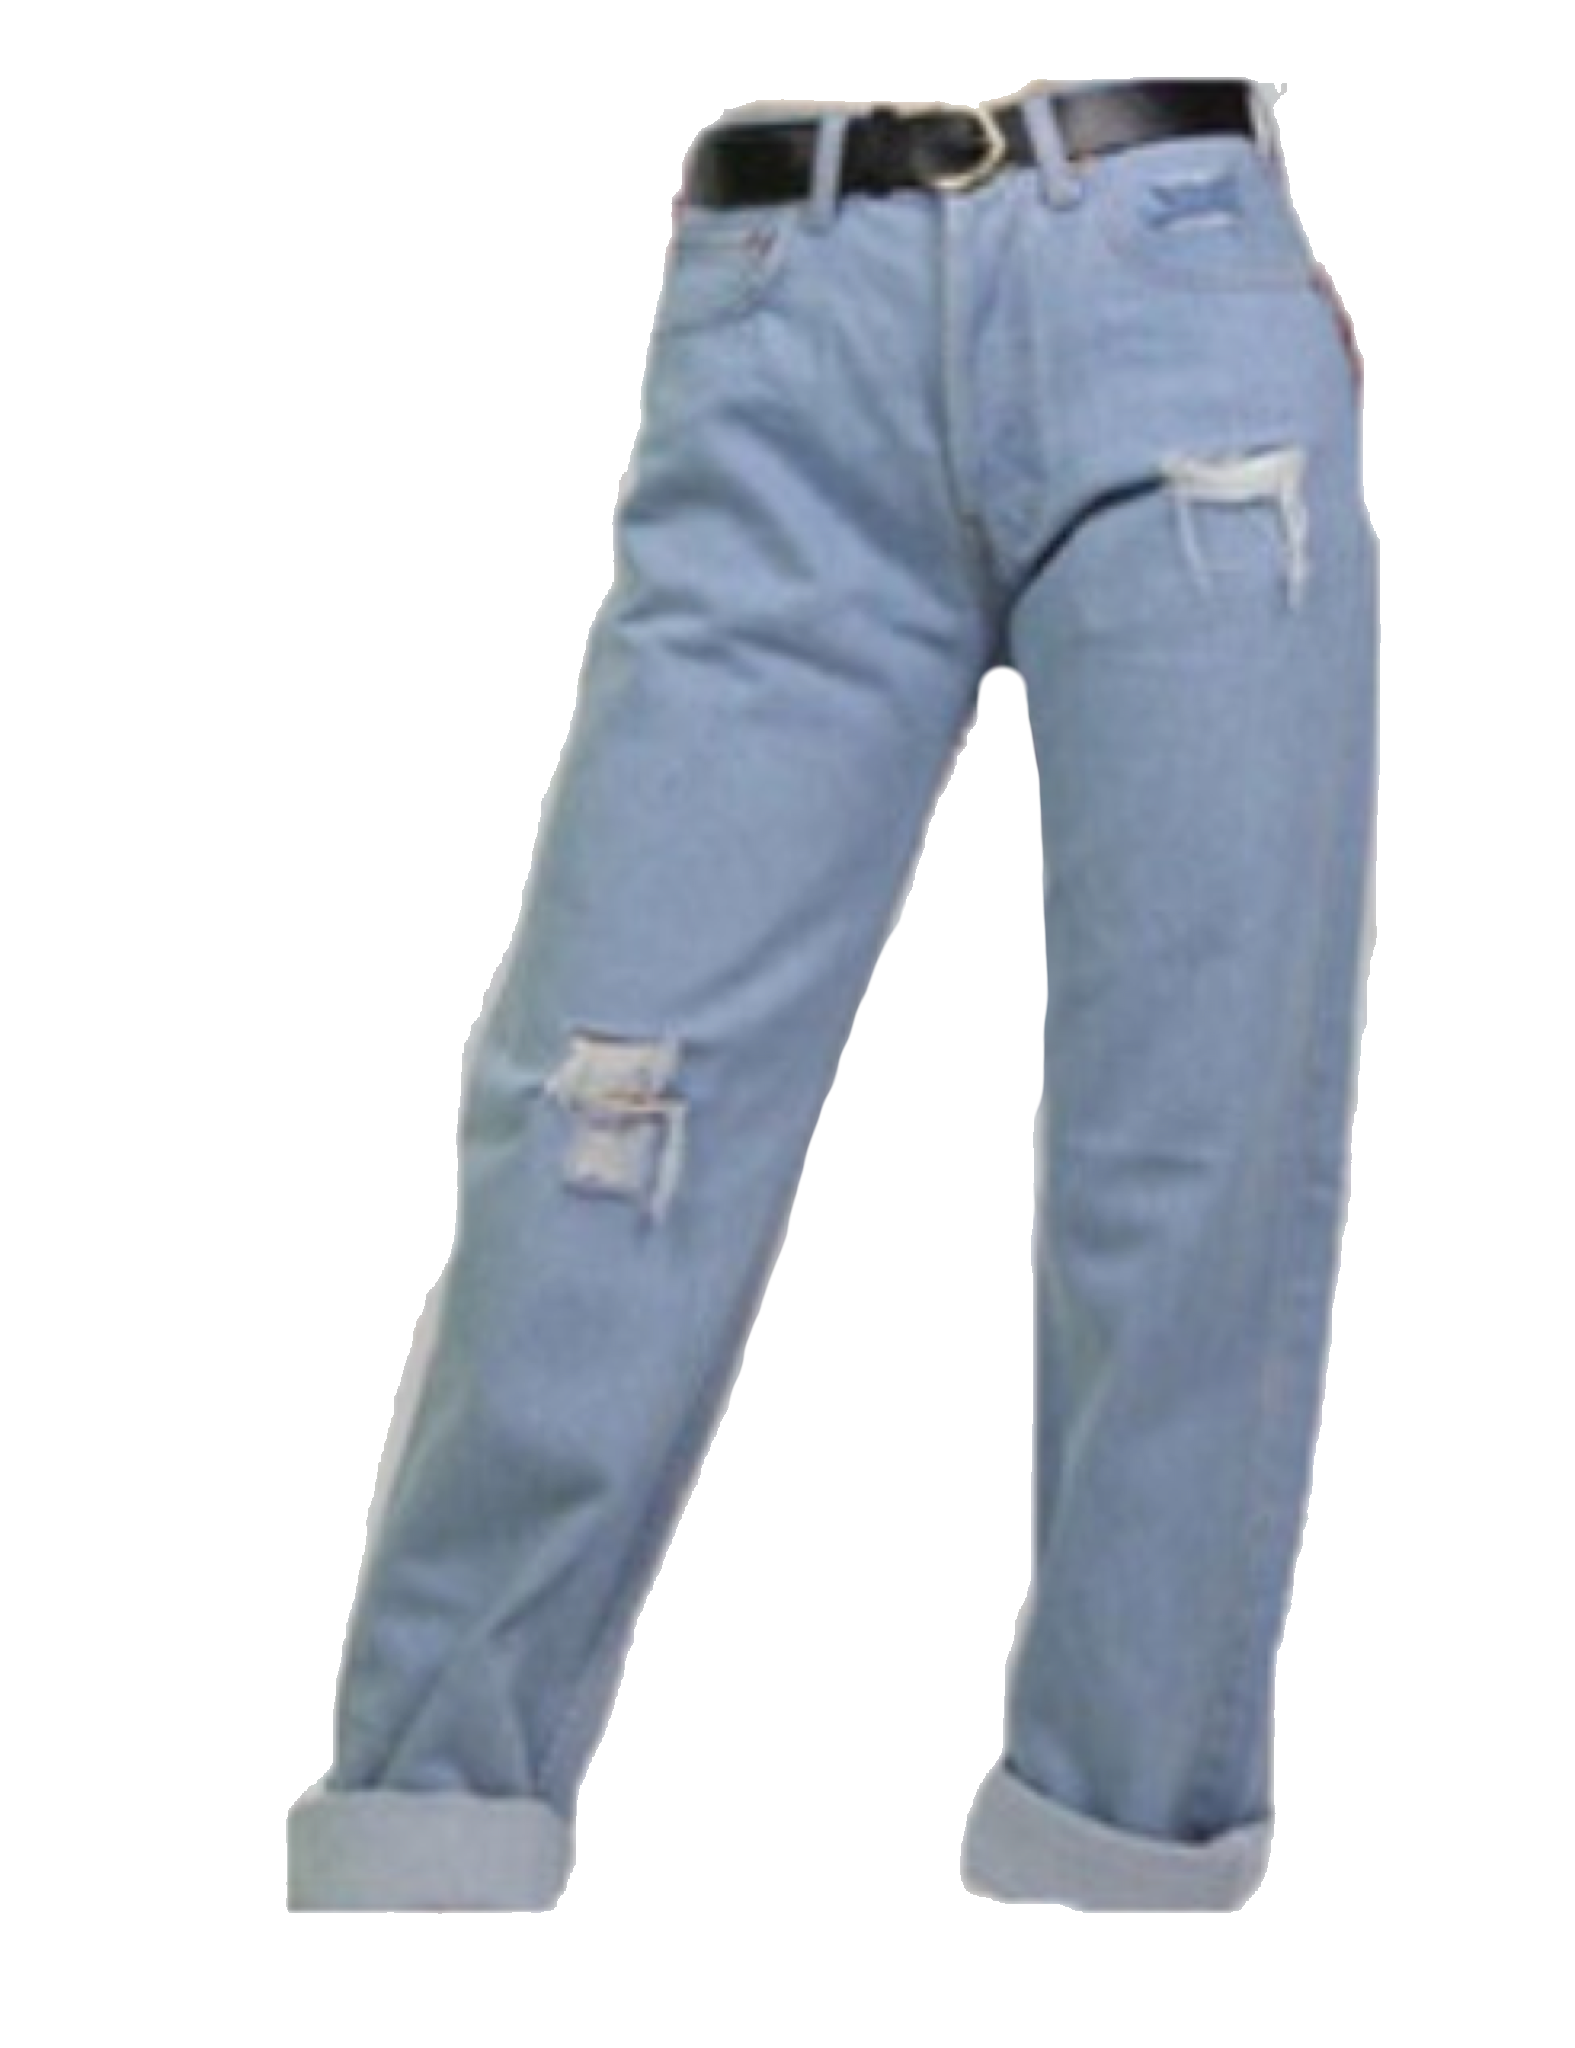 Mom jeans png. Polyvore pngs pinterest boyfriends